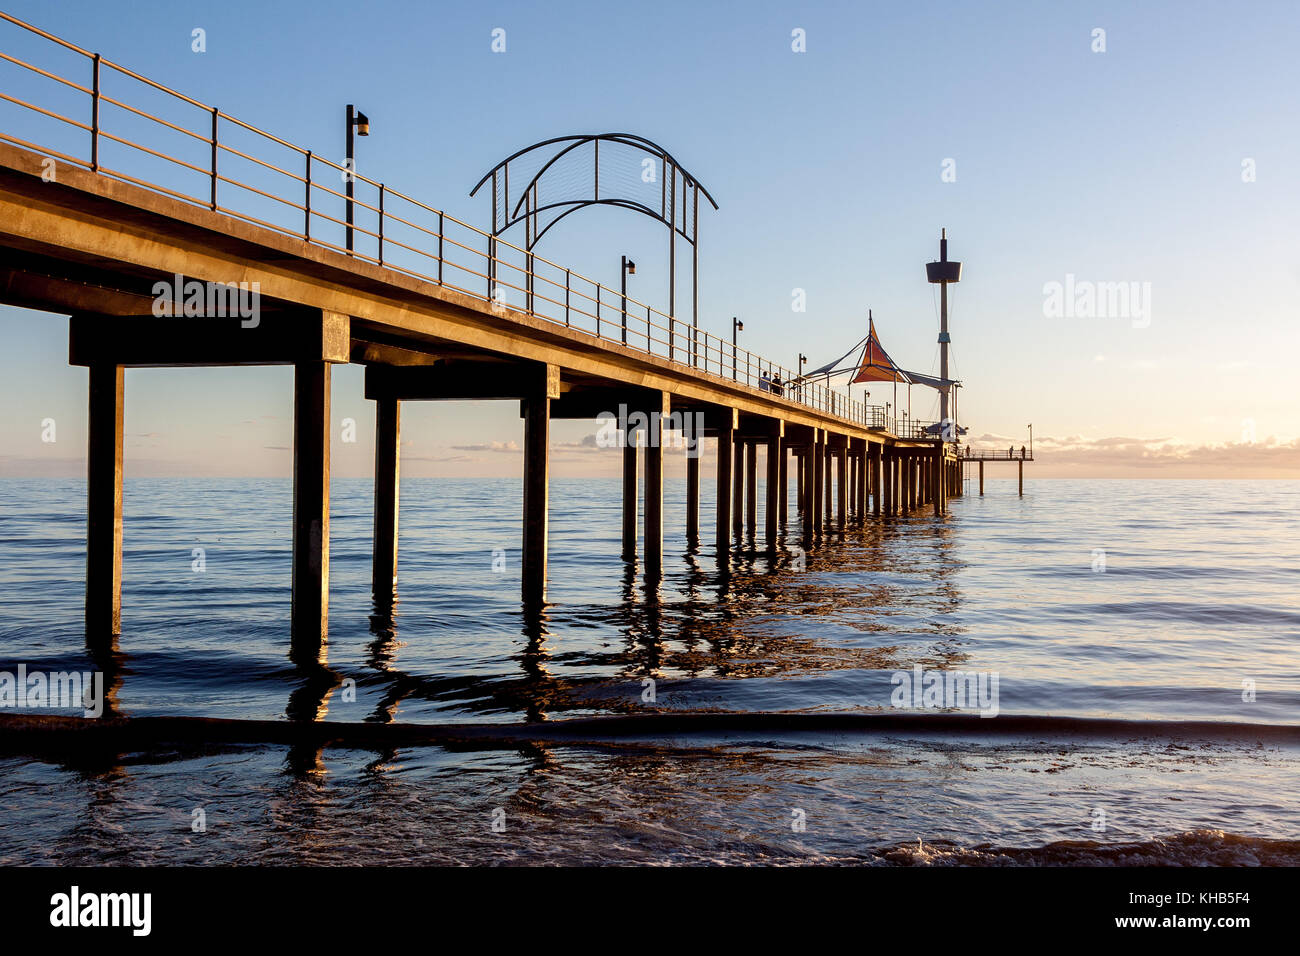 Sunset at Brighton beach, showing the concrete jetty which has abstract features. - Stock Image